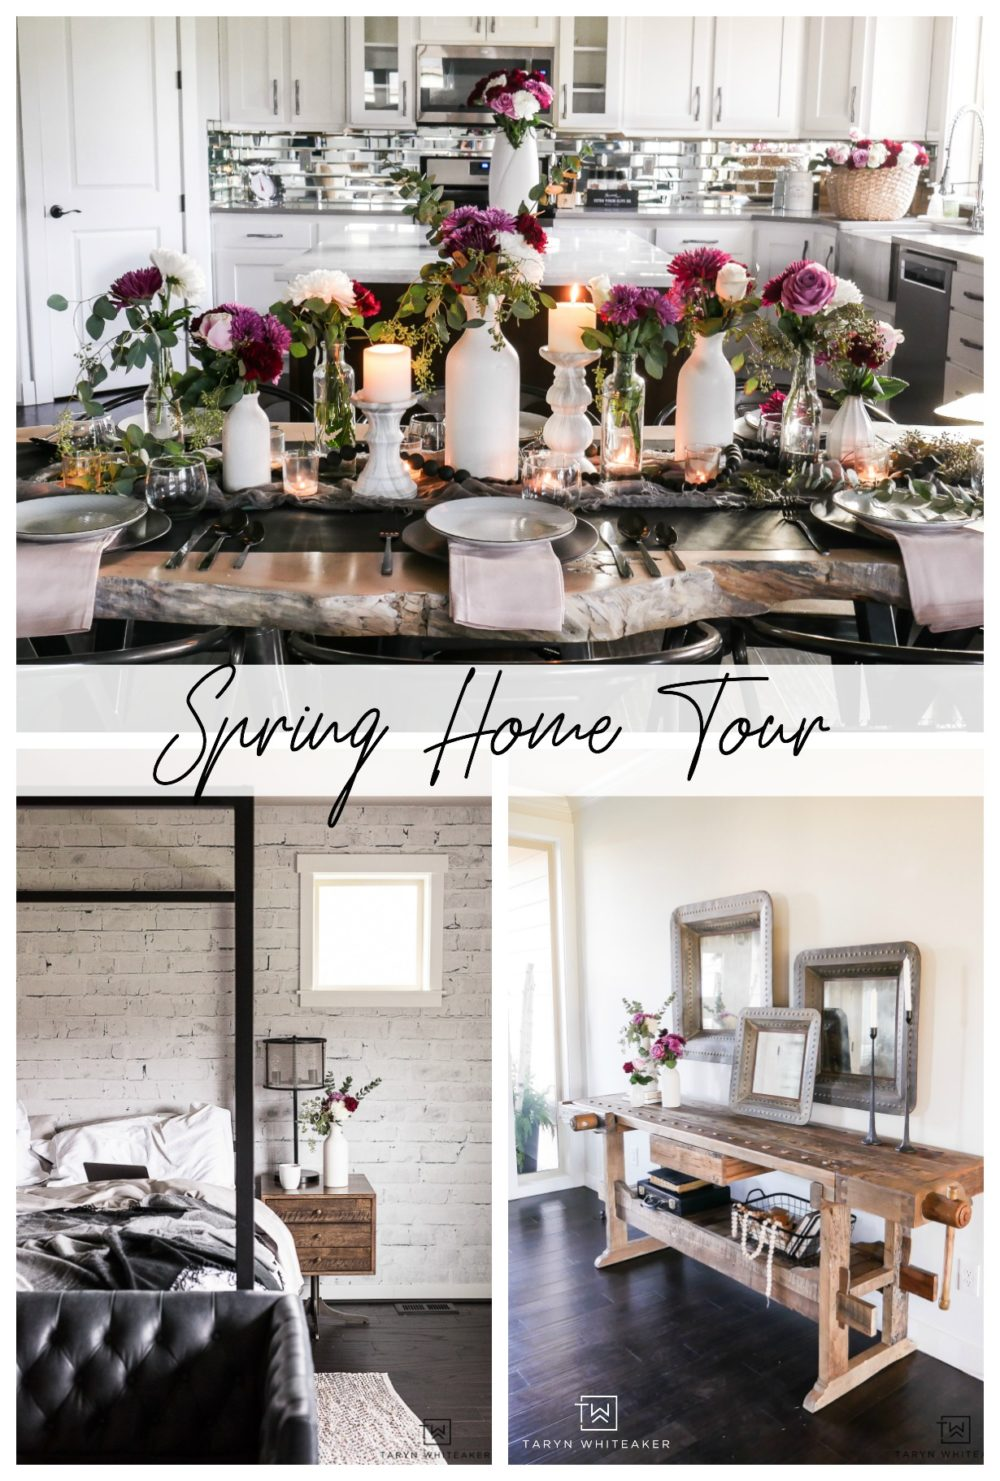 Spring Home Tour filled with fresh flowers and touches of pink!